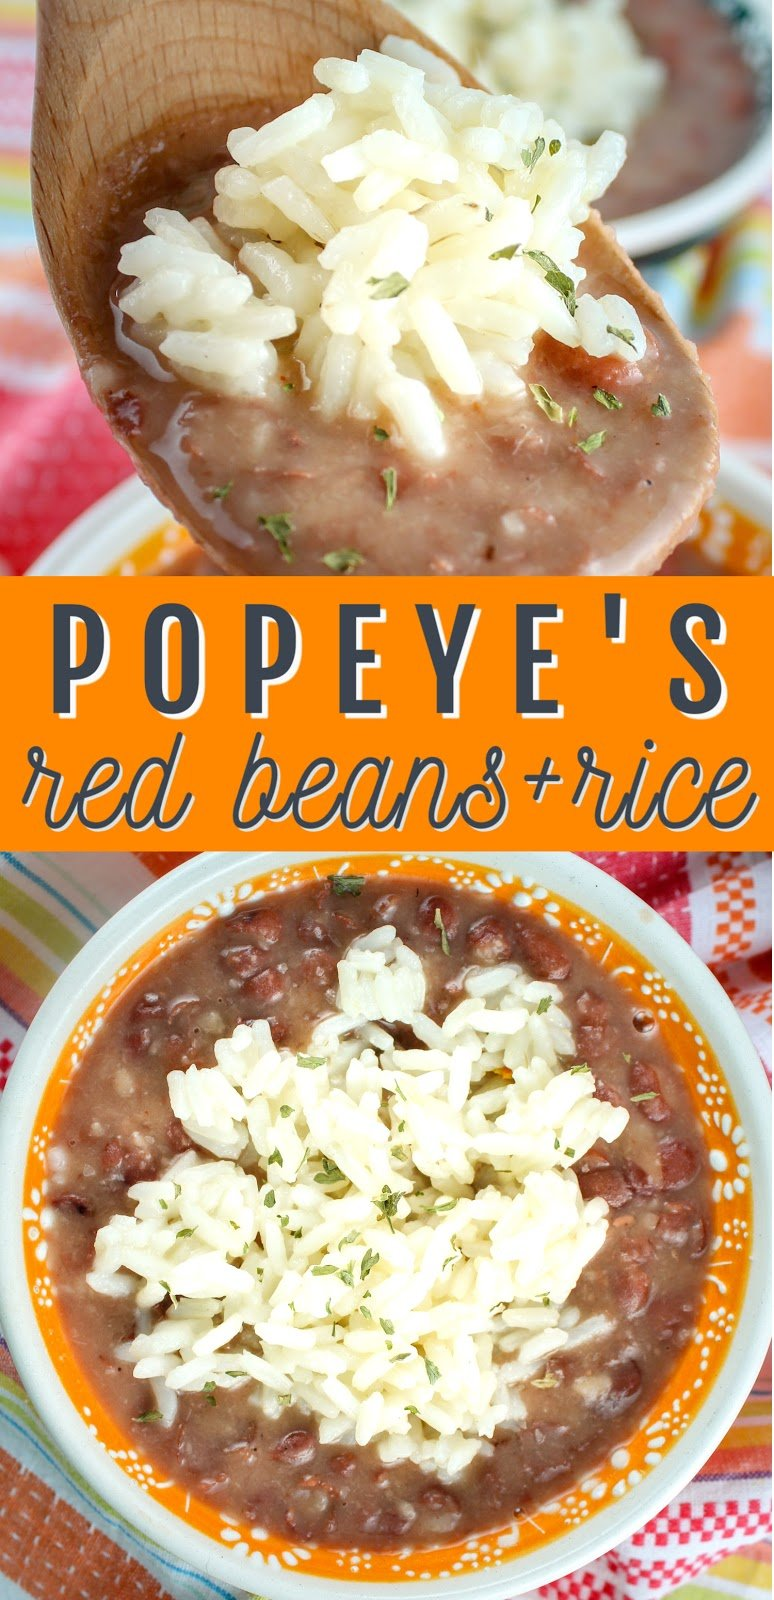 Popeye's Red Beans & Rice is one of my favorite take-out side dishes and making it at home is SO SIMPLE!!!! Creamy red beans with a slightly smoky flavor topped with fluffy white rice – the perfect side!  via @foodhussy